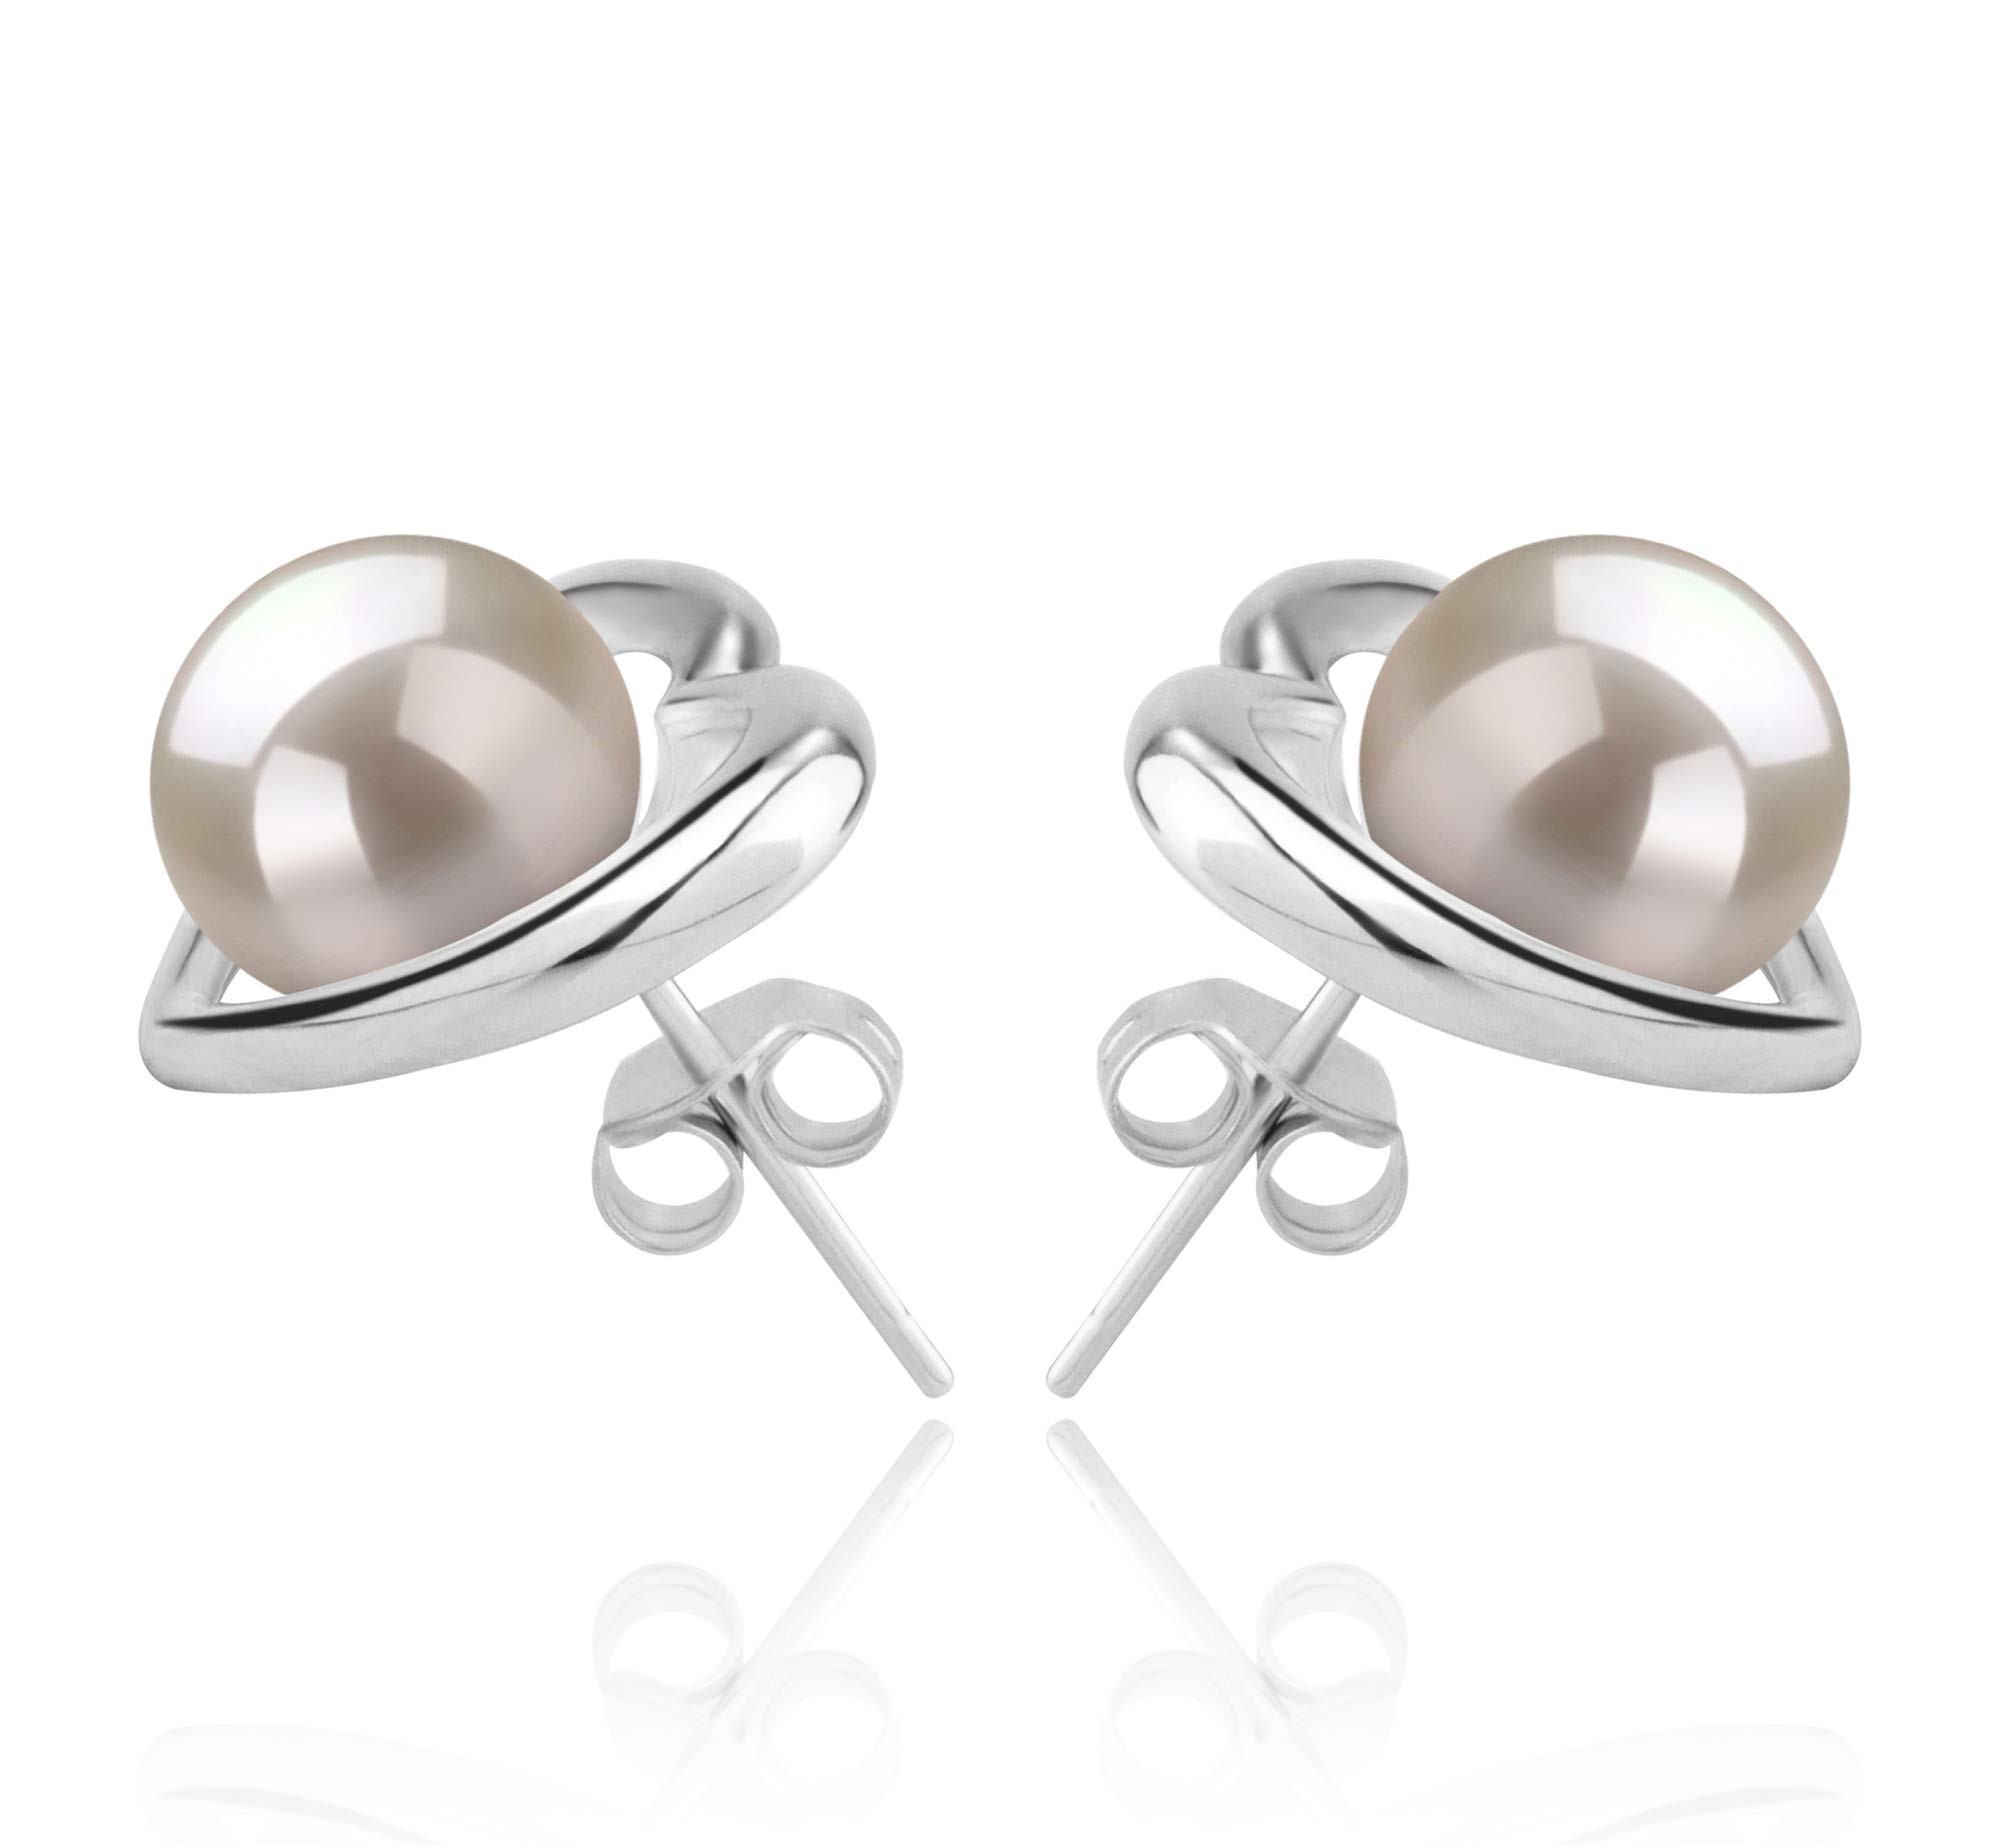 Kimberly-Heart White 8-9mm AAAA Quality Freshwater 925 Sterling Silver Cultured Pearl Earring Pair by PearlsOnly (Image #3)